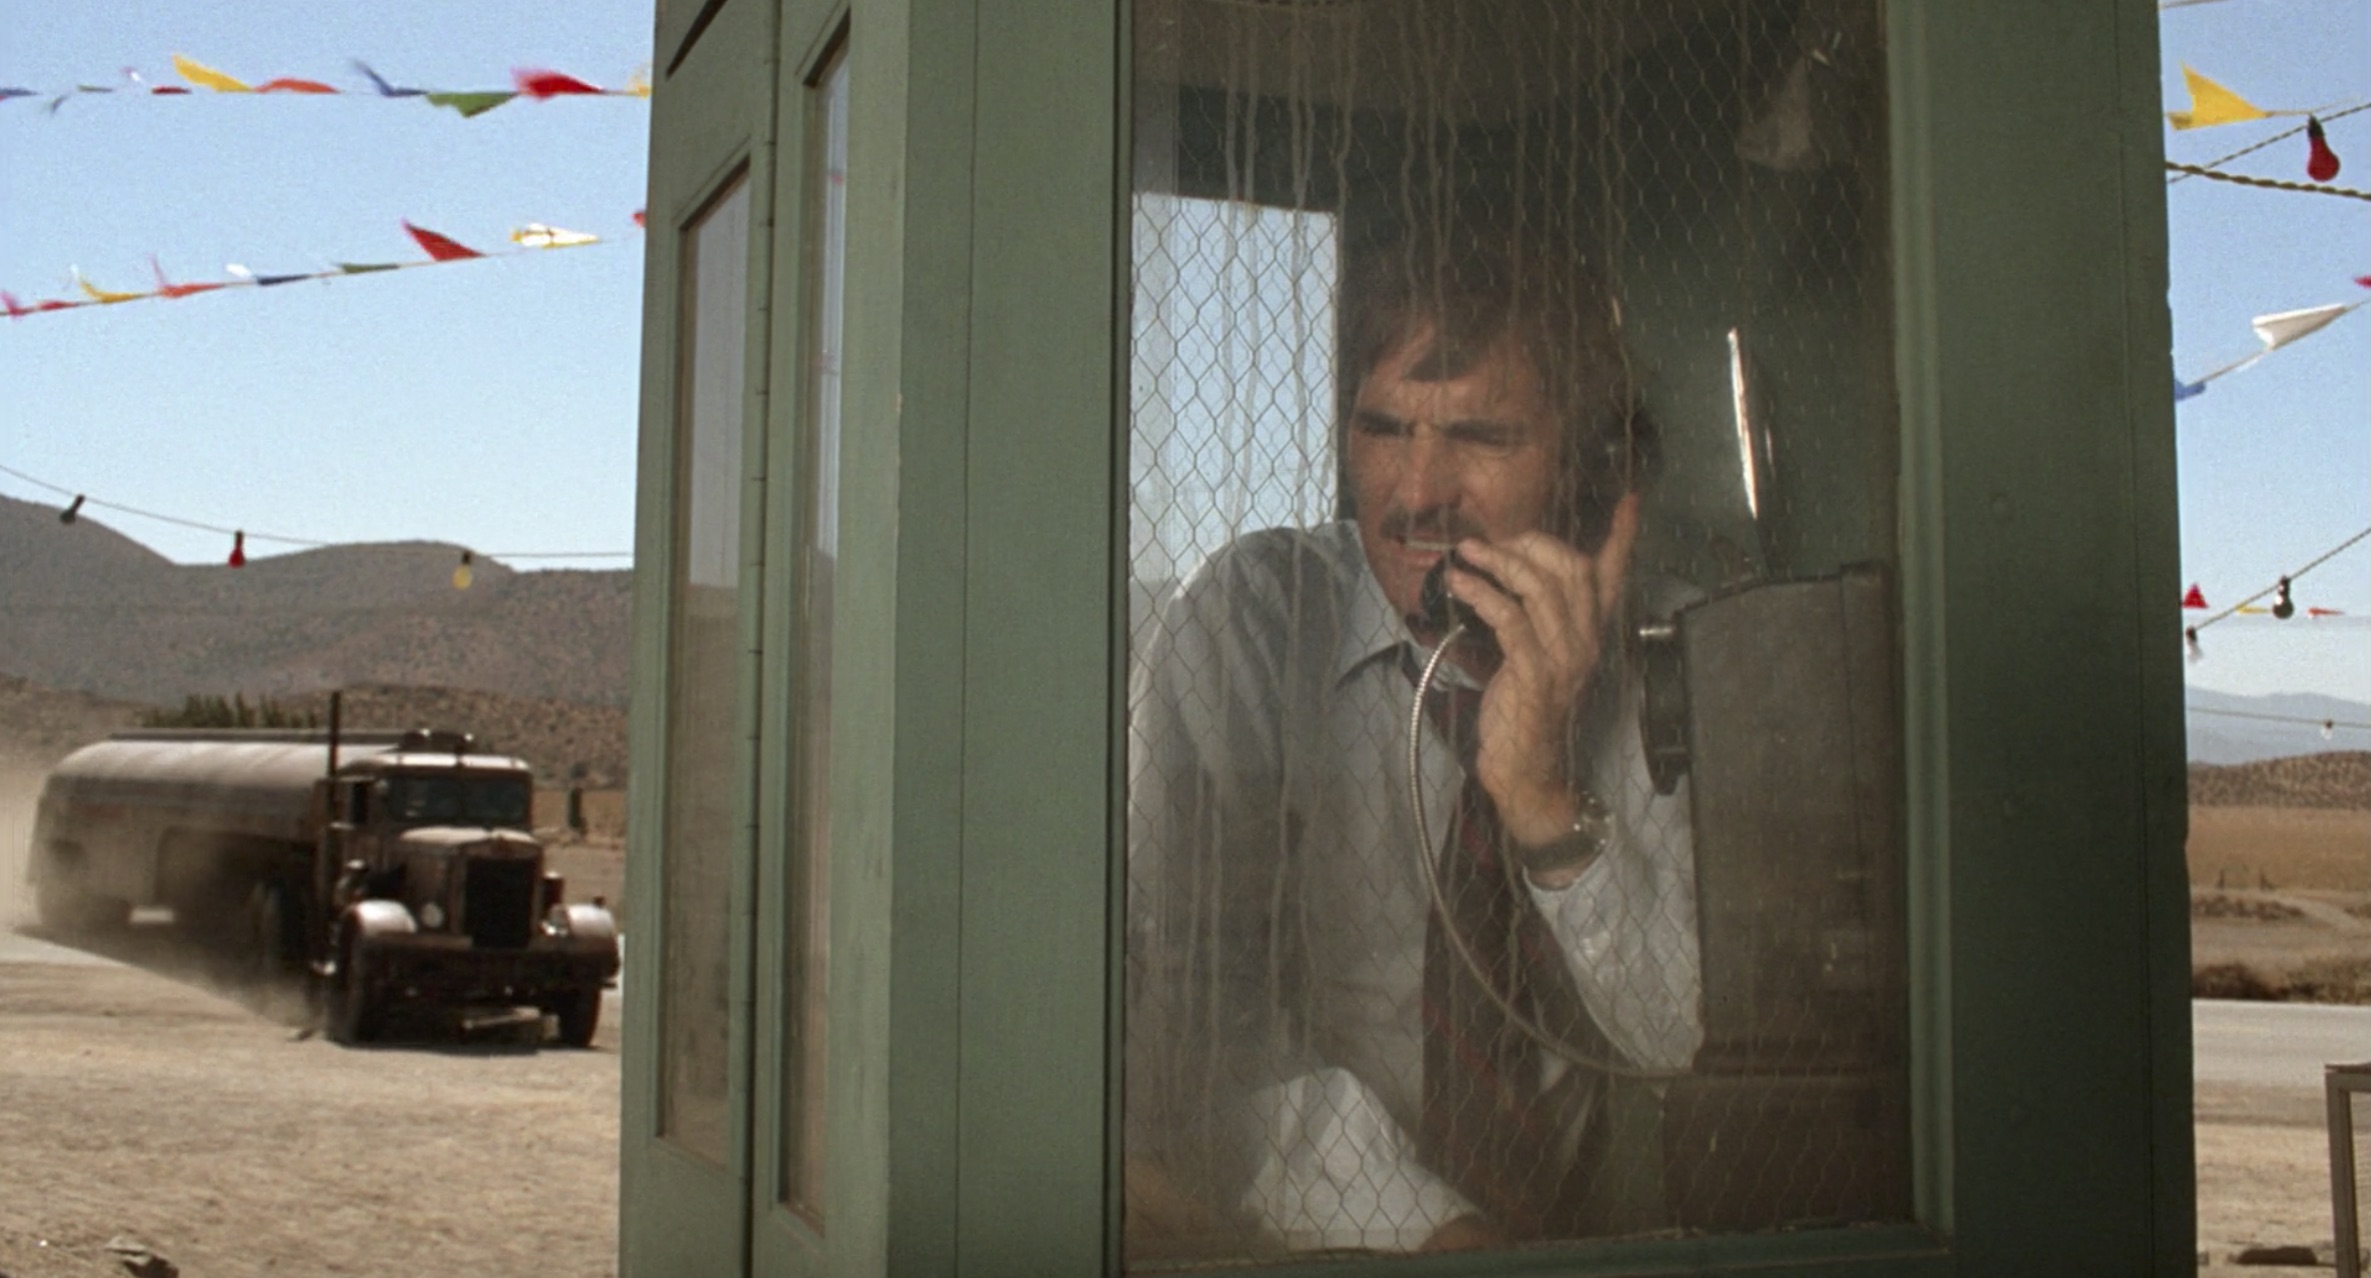 phone booth scene from Duel